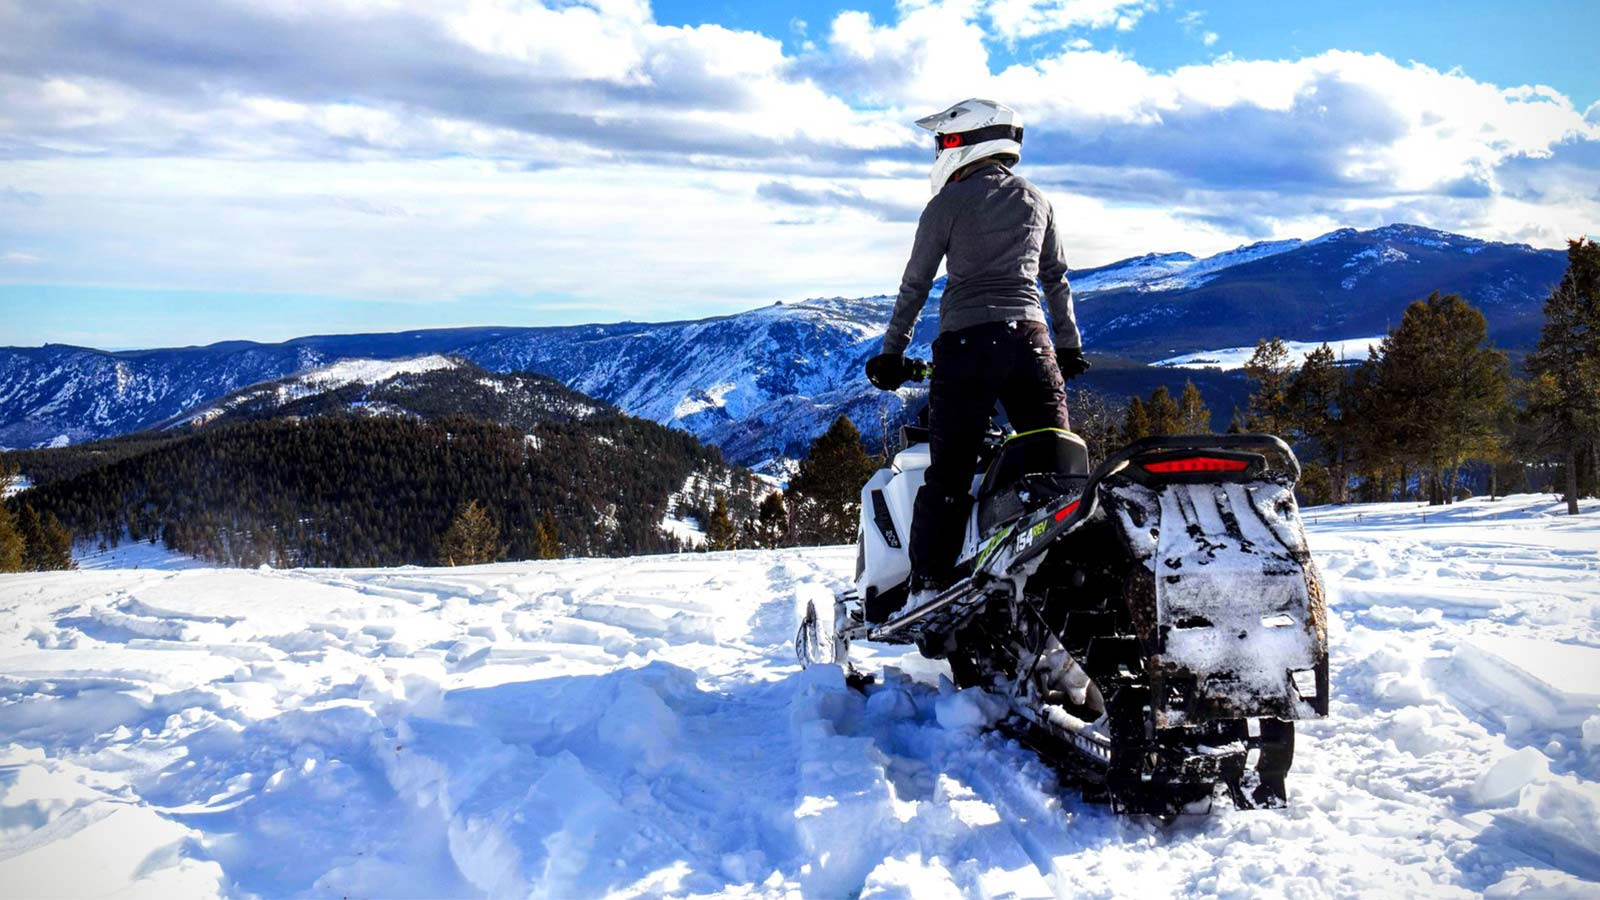 Snowmobile rider overlooking grand view of mountainside